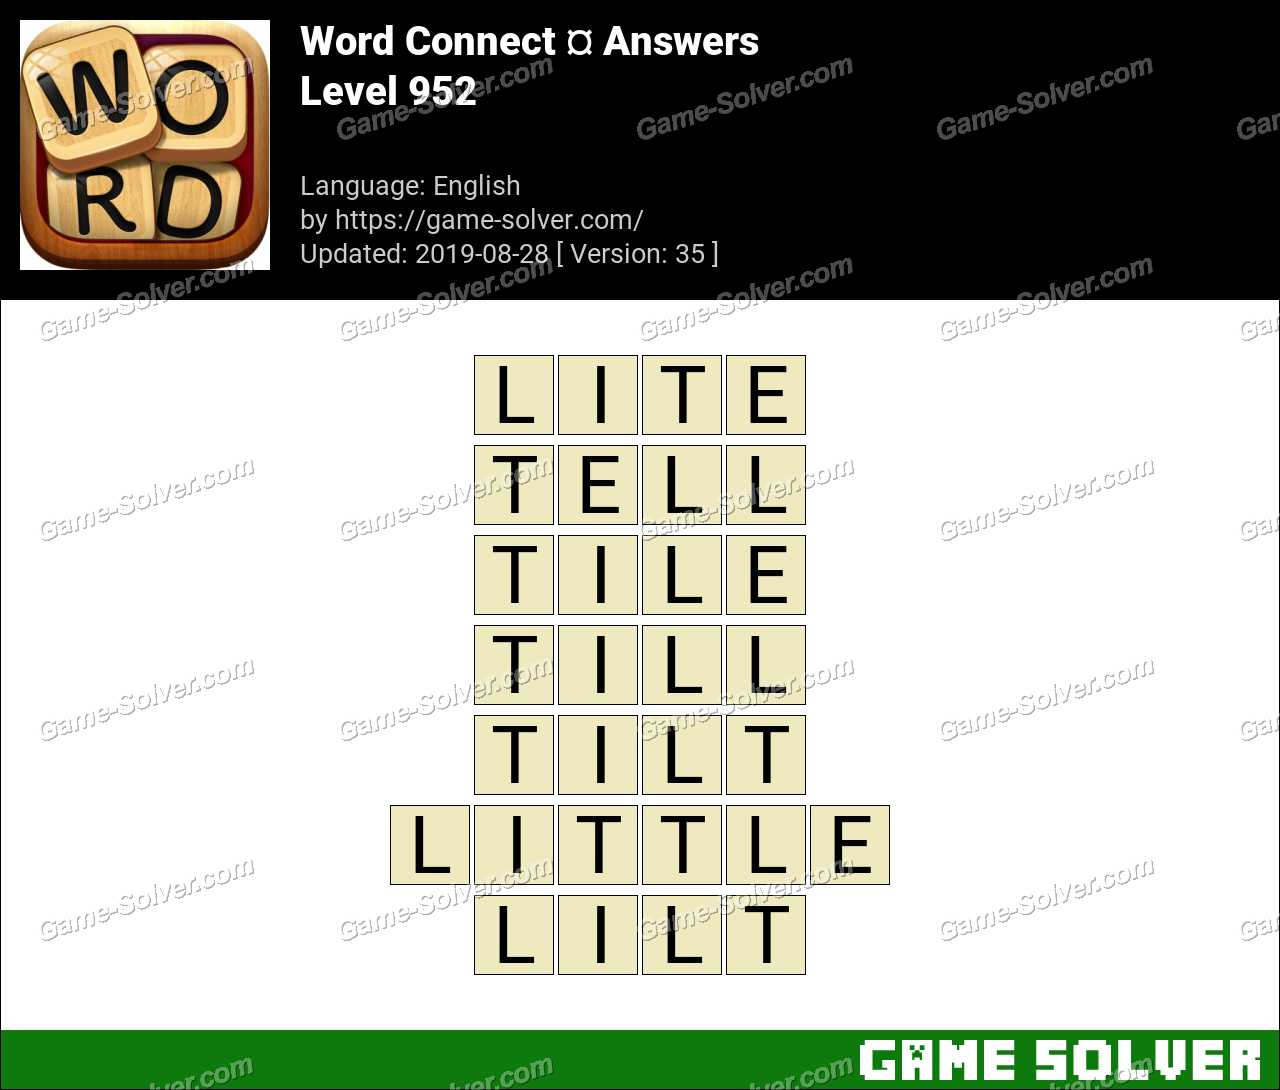 Word Connect Level 952 Answers